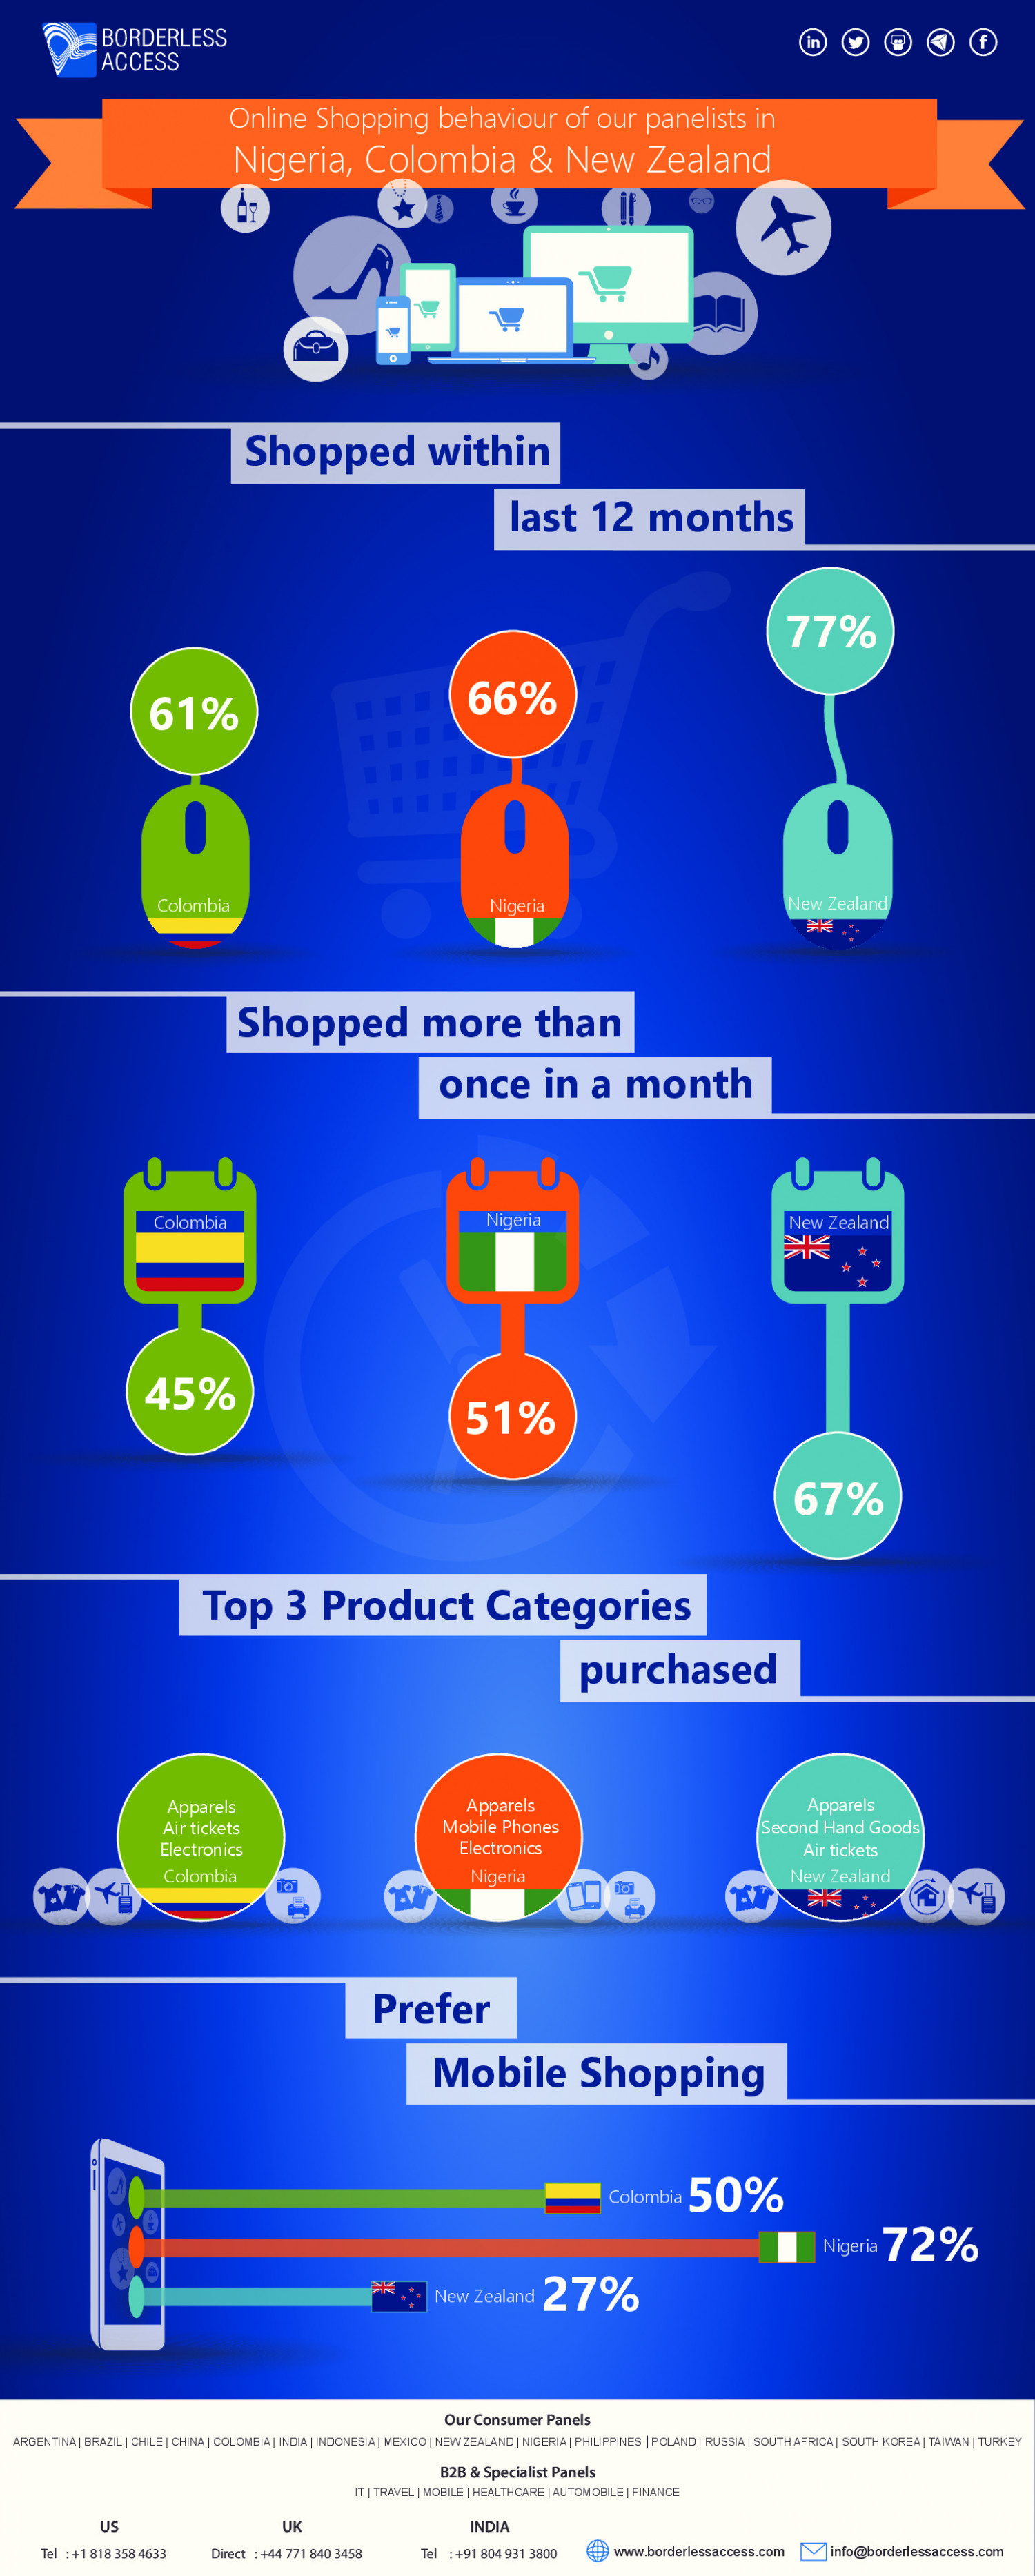 Shopping preferences of online consumers in Nigeria, Colombia and New Zealand  Infographic